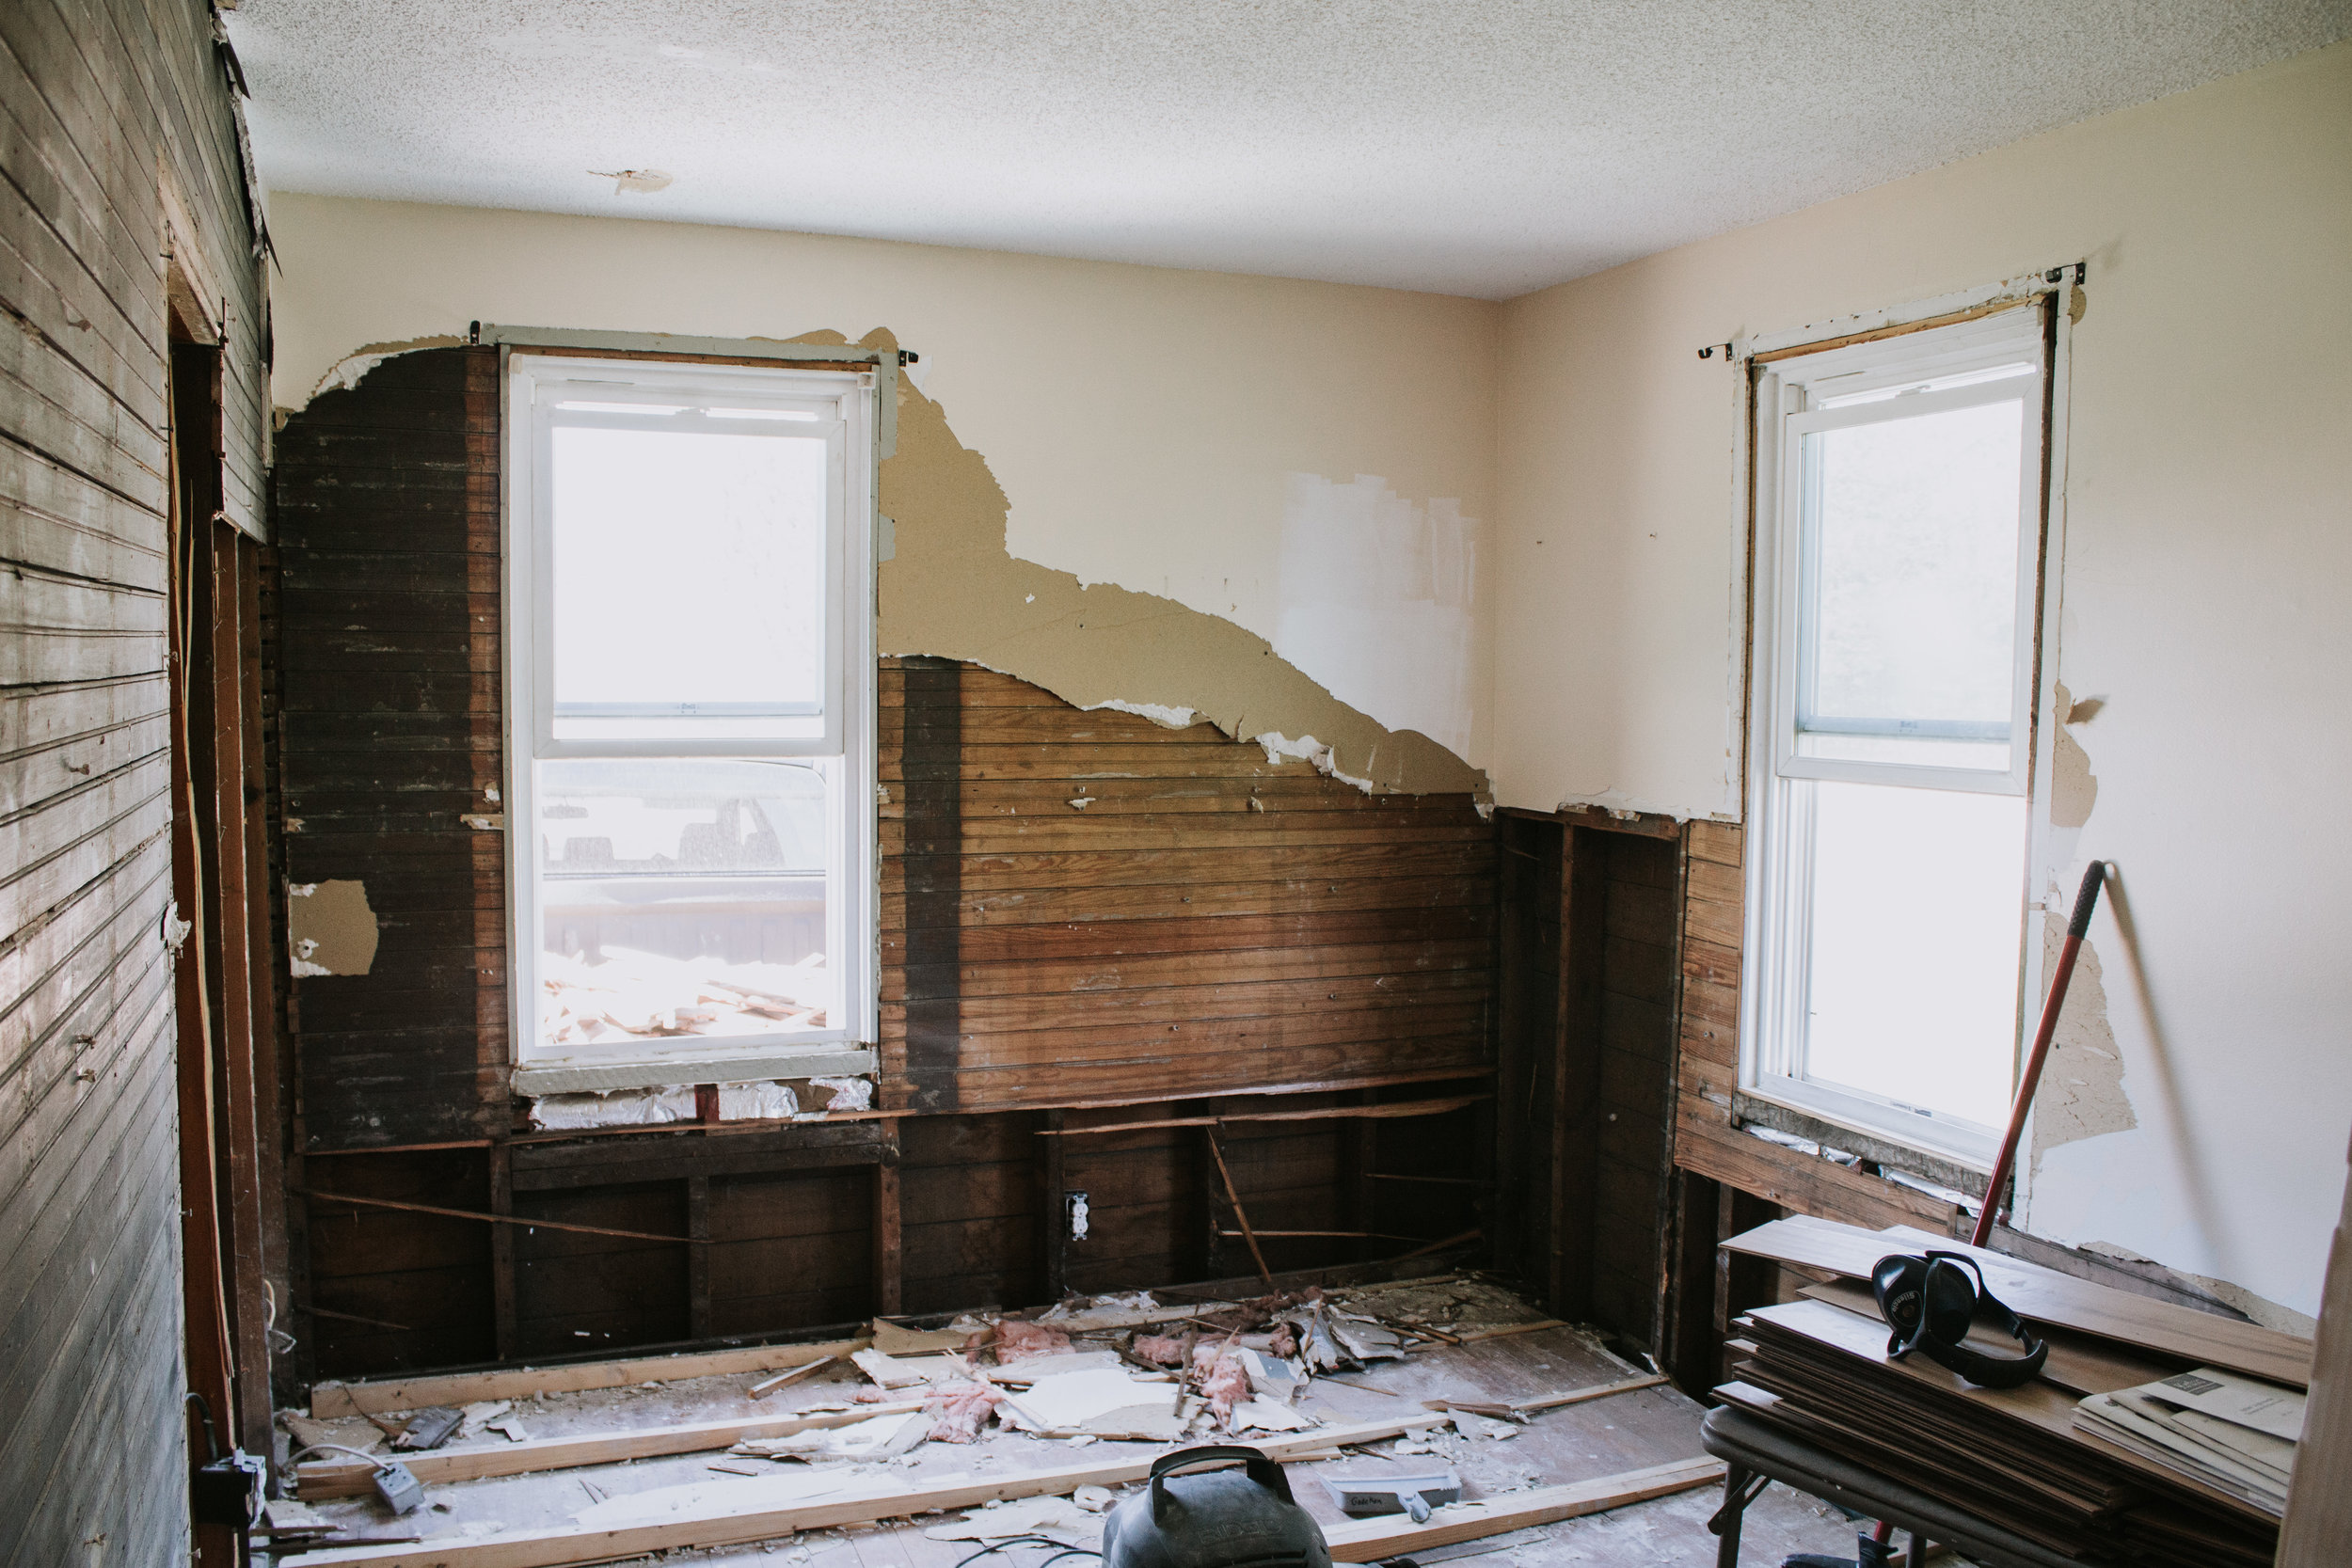 When to start from scratch vs. when to preserve and restore. Home renovation tips for fixer uppers and interior design tips for old home remodels. 3 reasons you should gut your home. 3 reasons you should save/restore/preserve your home.